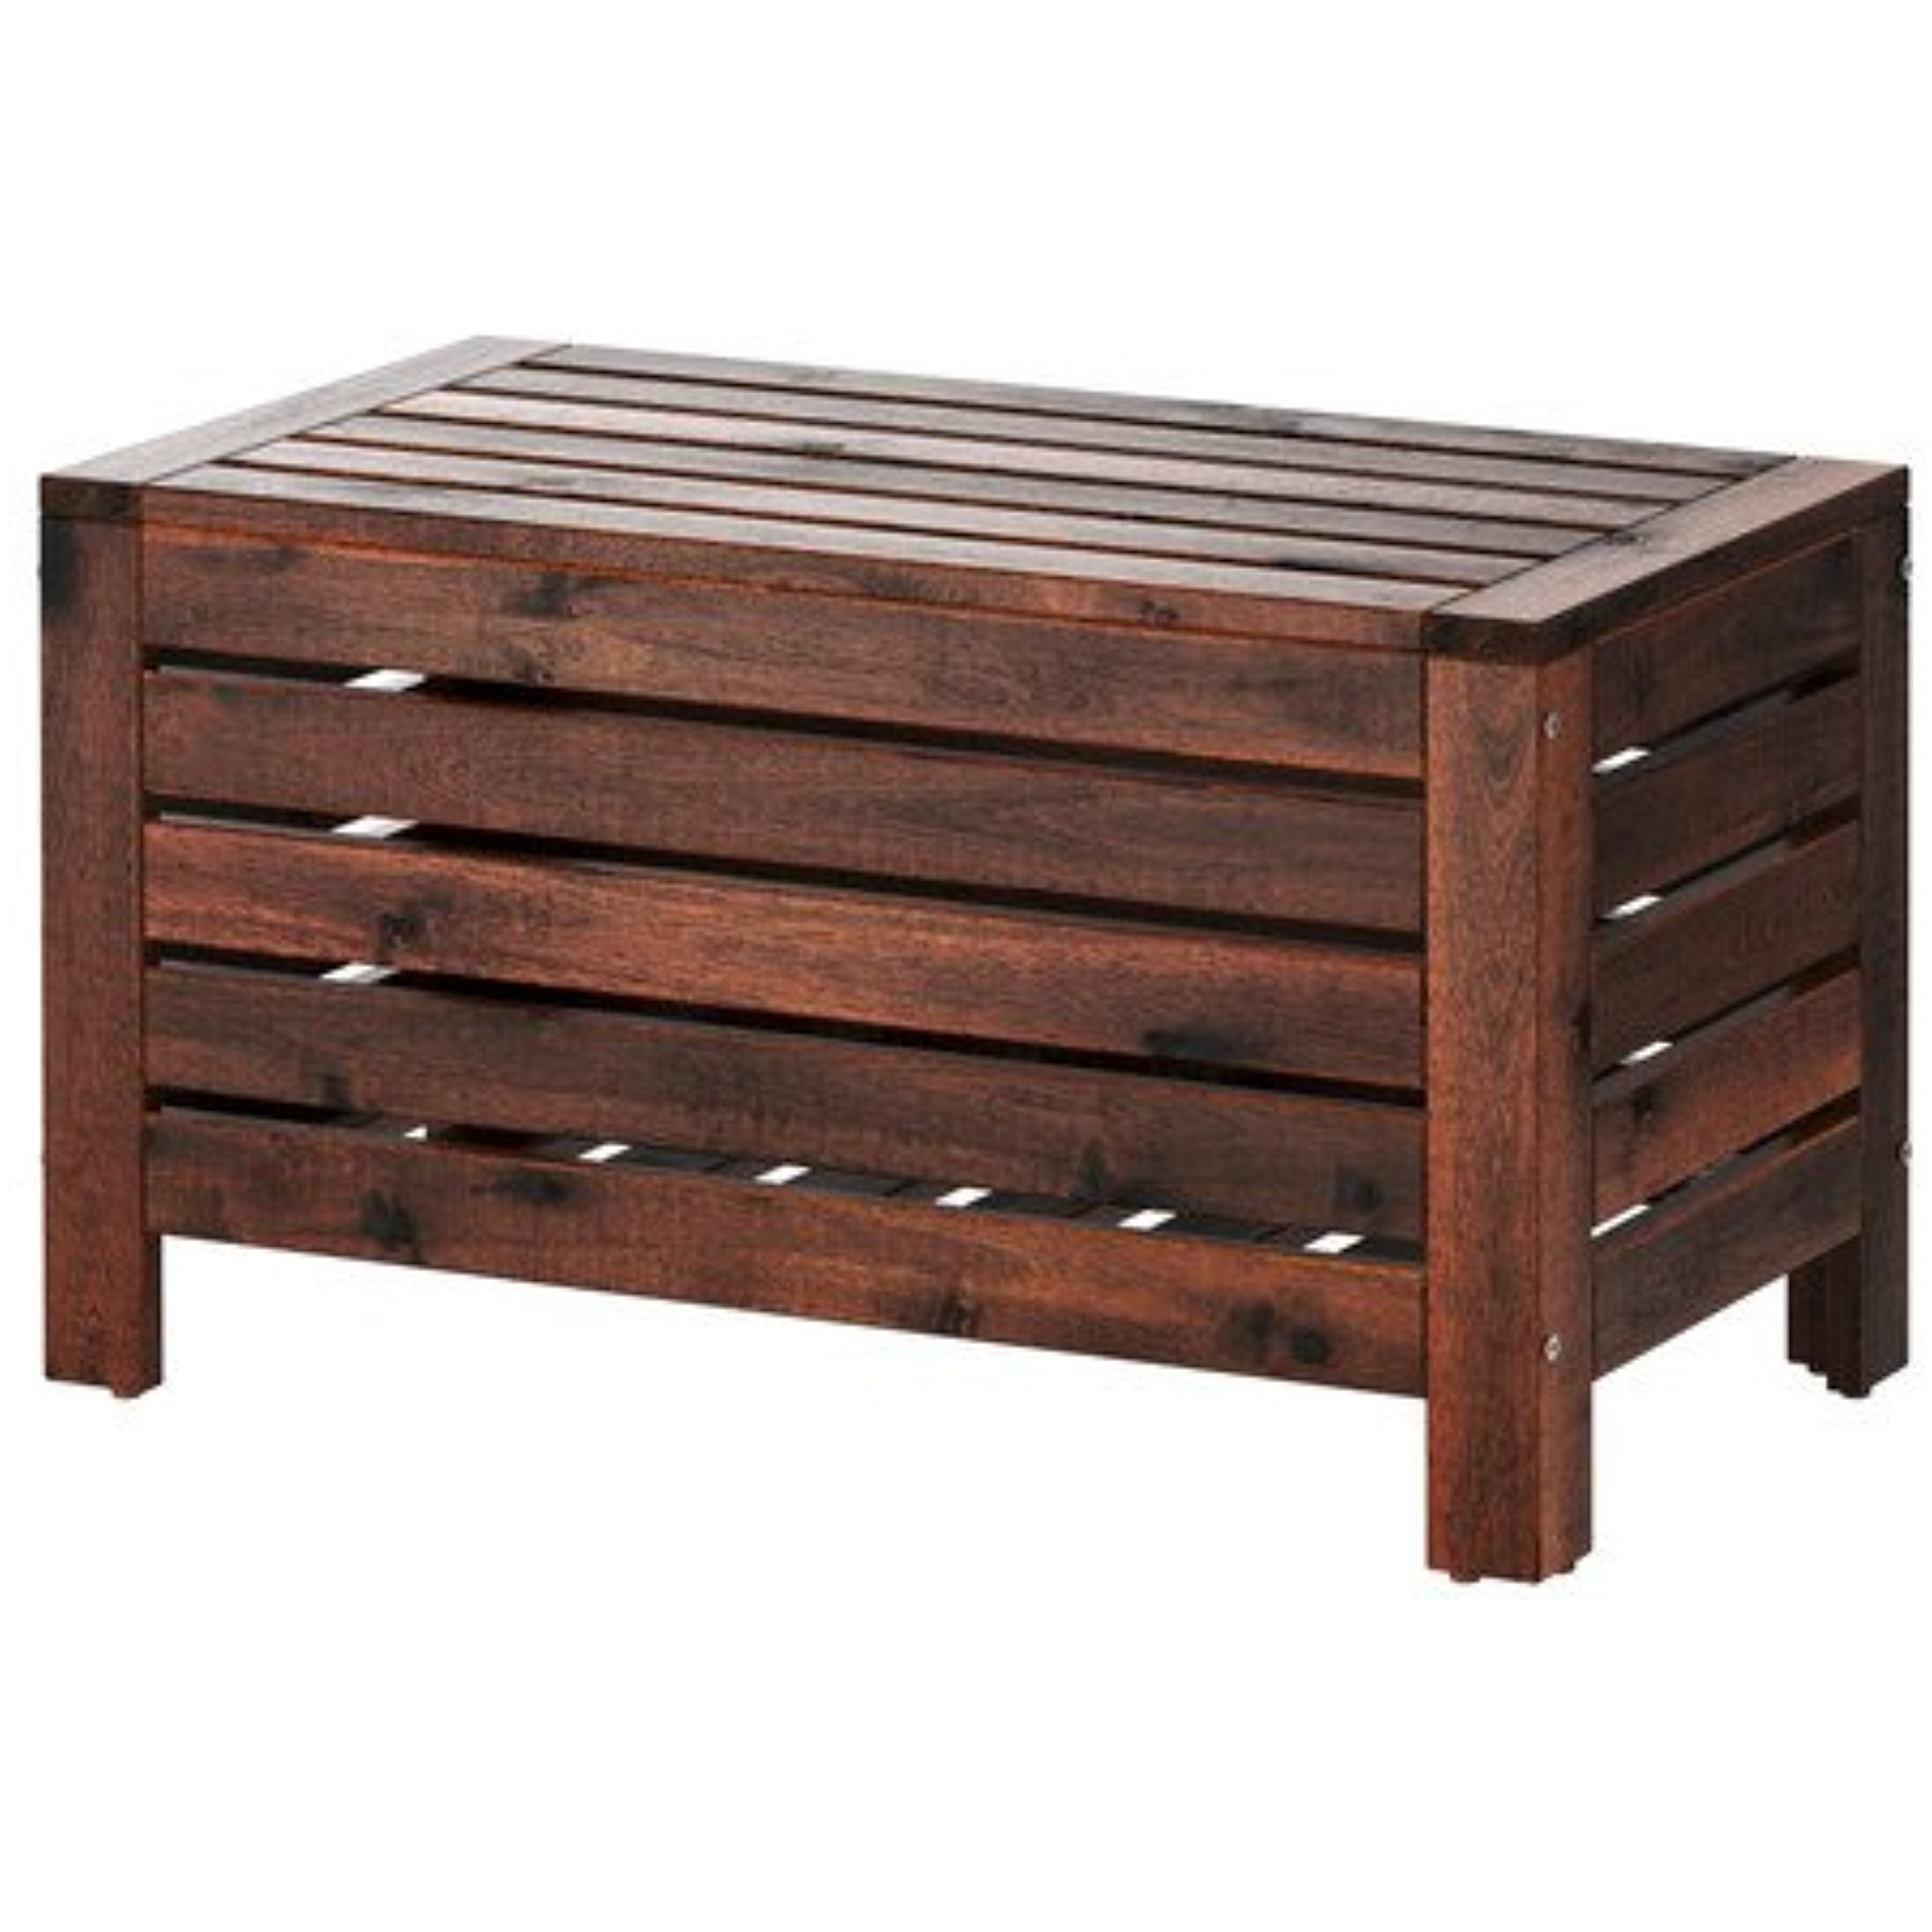 Ikea Storage bench, outdoor, brown stained brown 1626.21429.1014